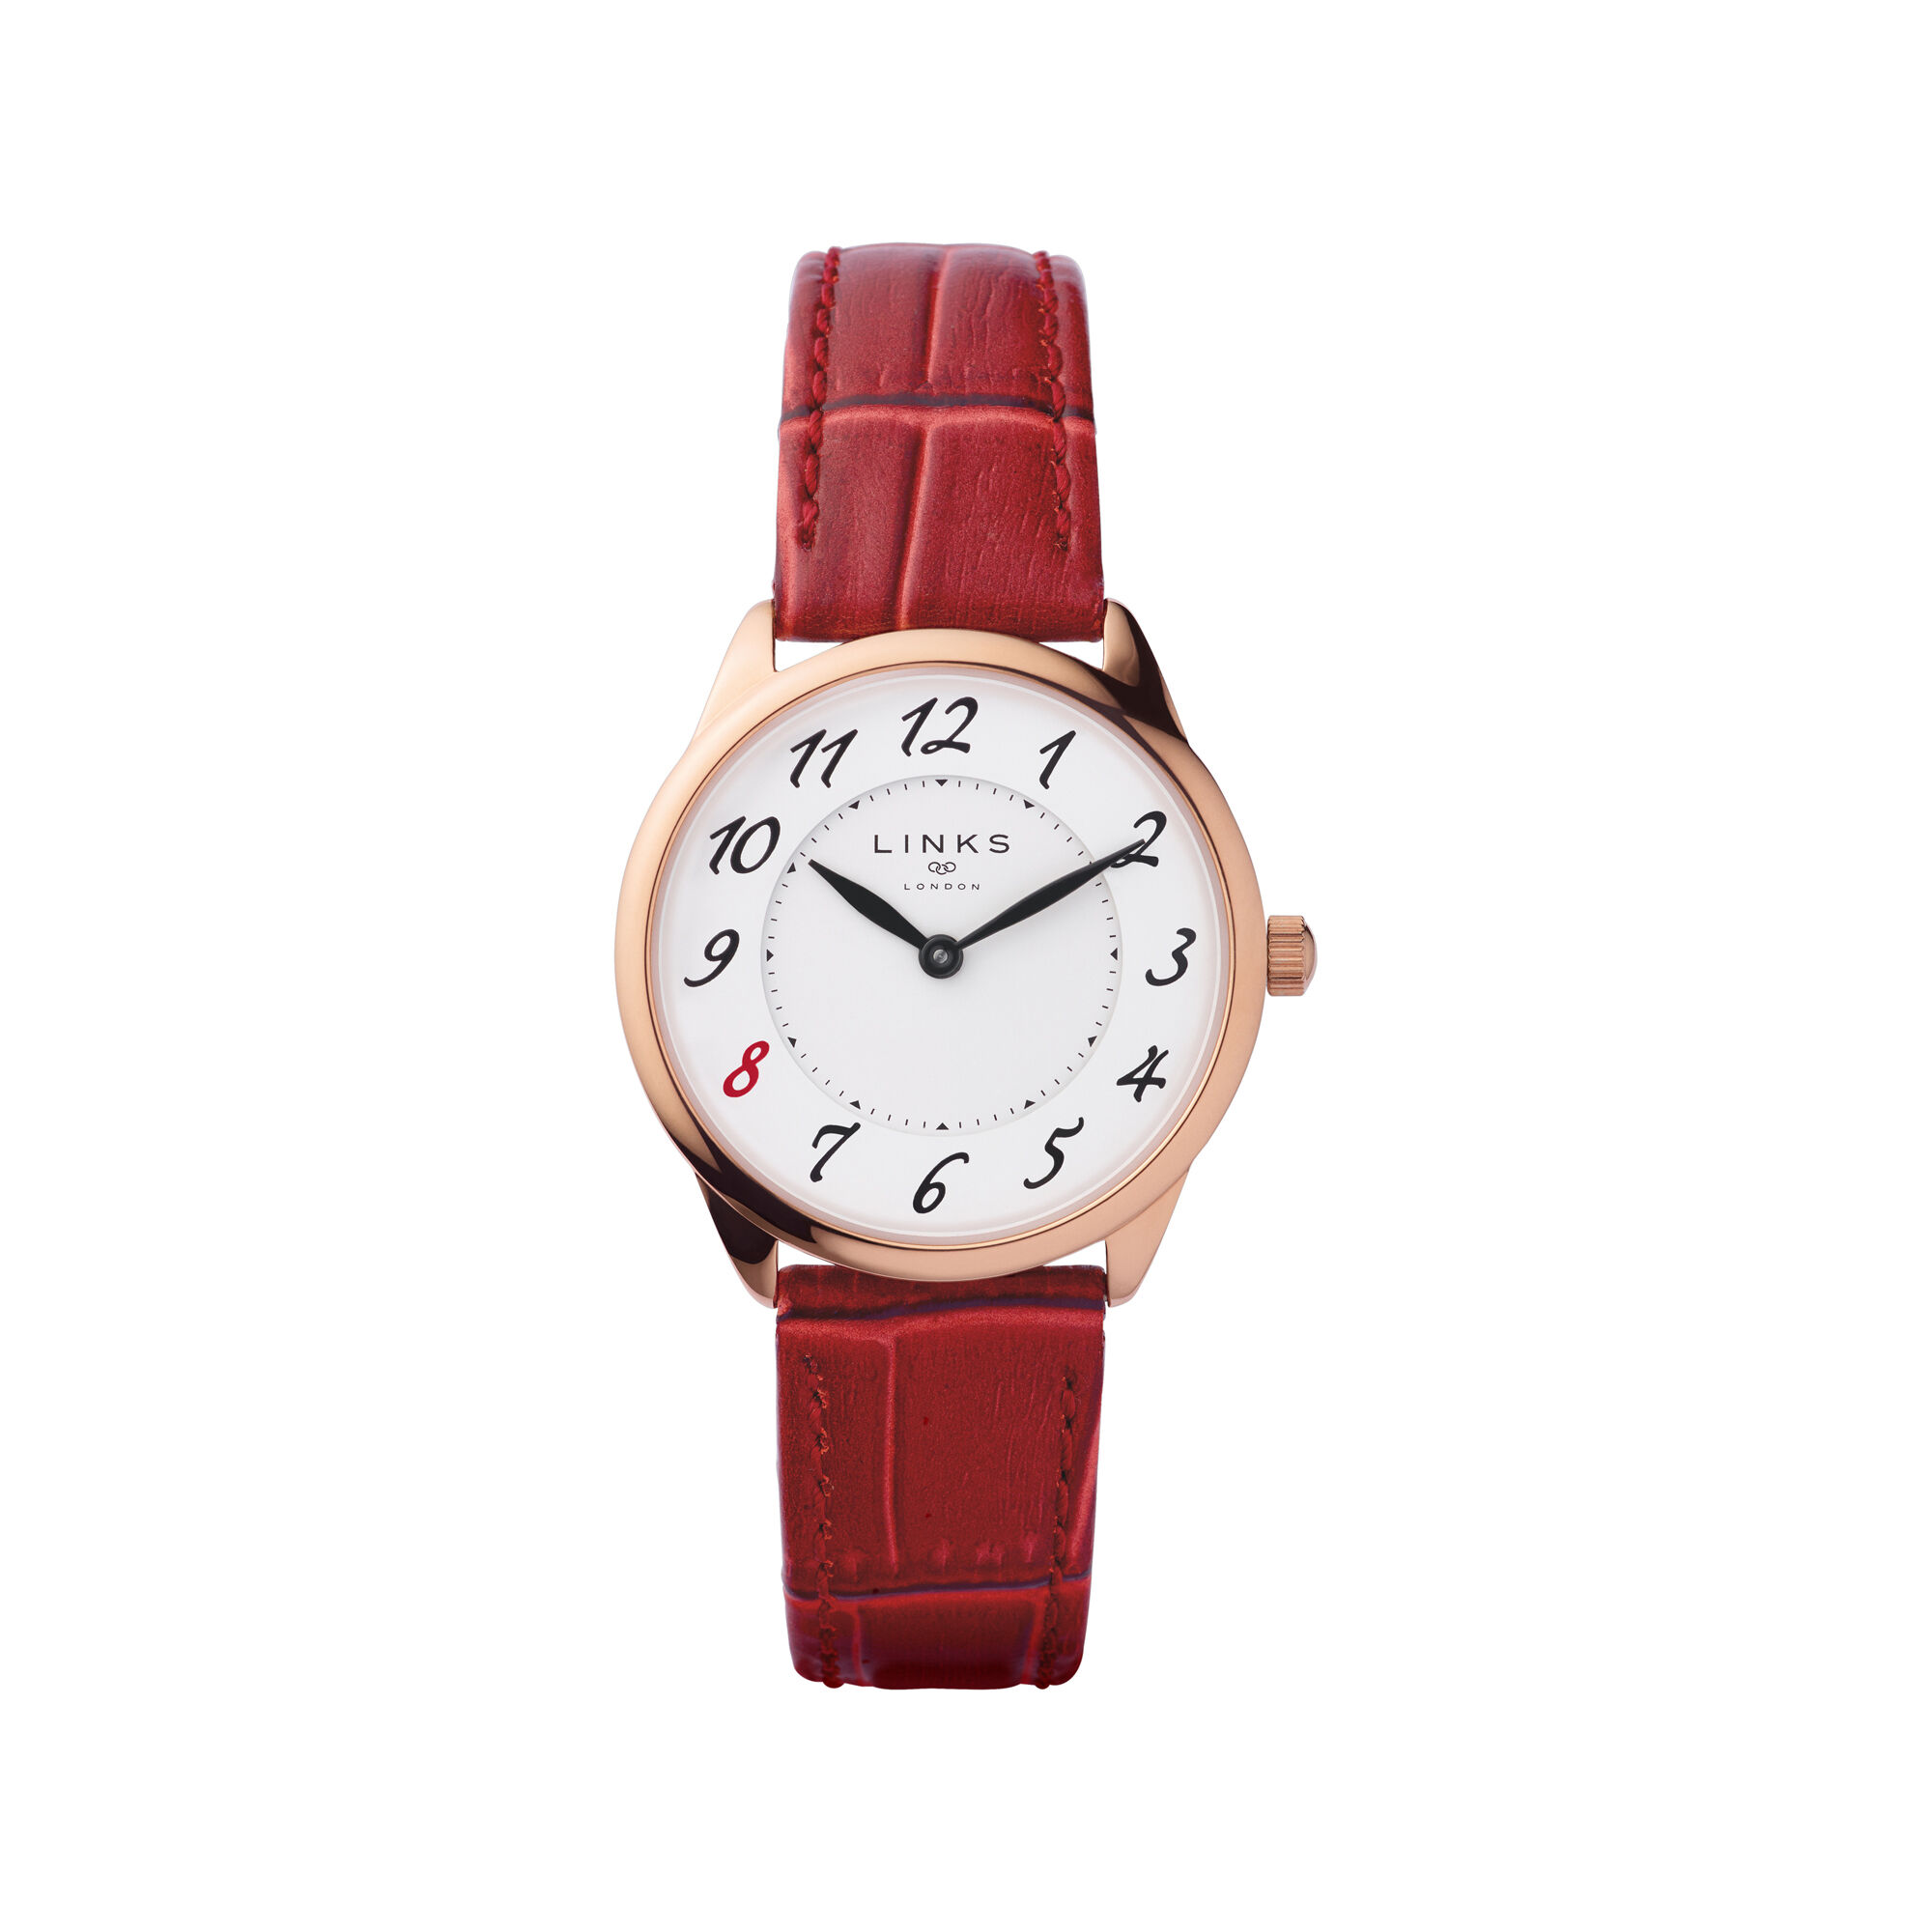 red redblack watches wood orologio black watch sandalwood ebony leather giacomo design massiccio